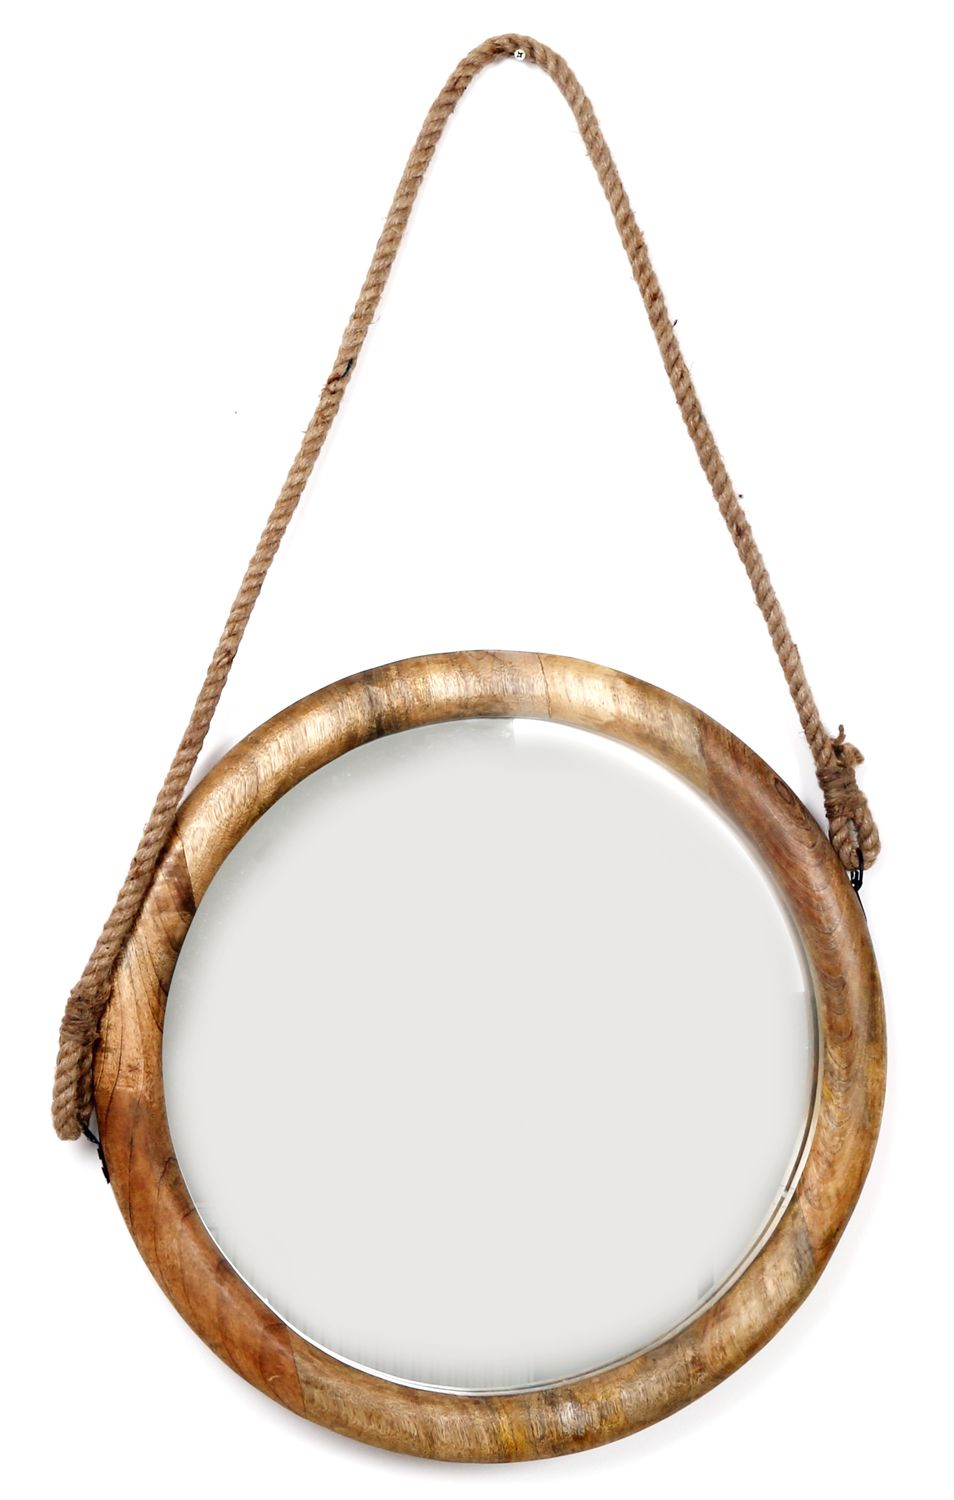 large hanging natural wood round mirror with rope 56cm ebay. Black Bedroom Furniture Sets. Home Design Ideas